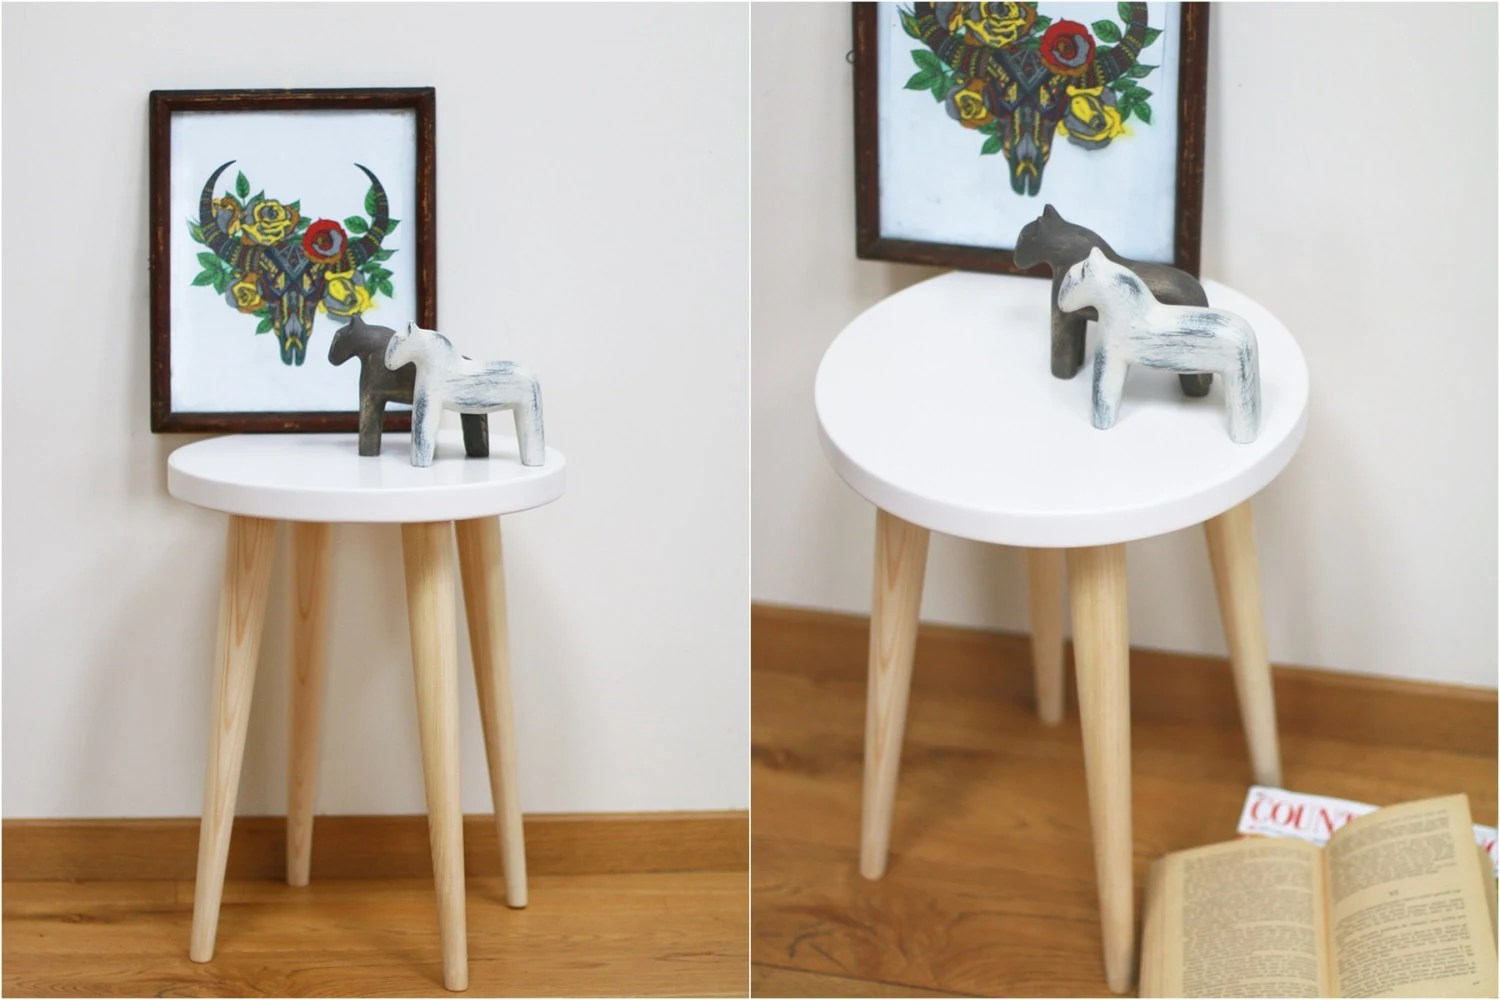 White Stool Round Table Scandinavian Style Side Table Wood